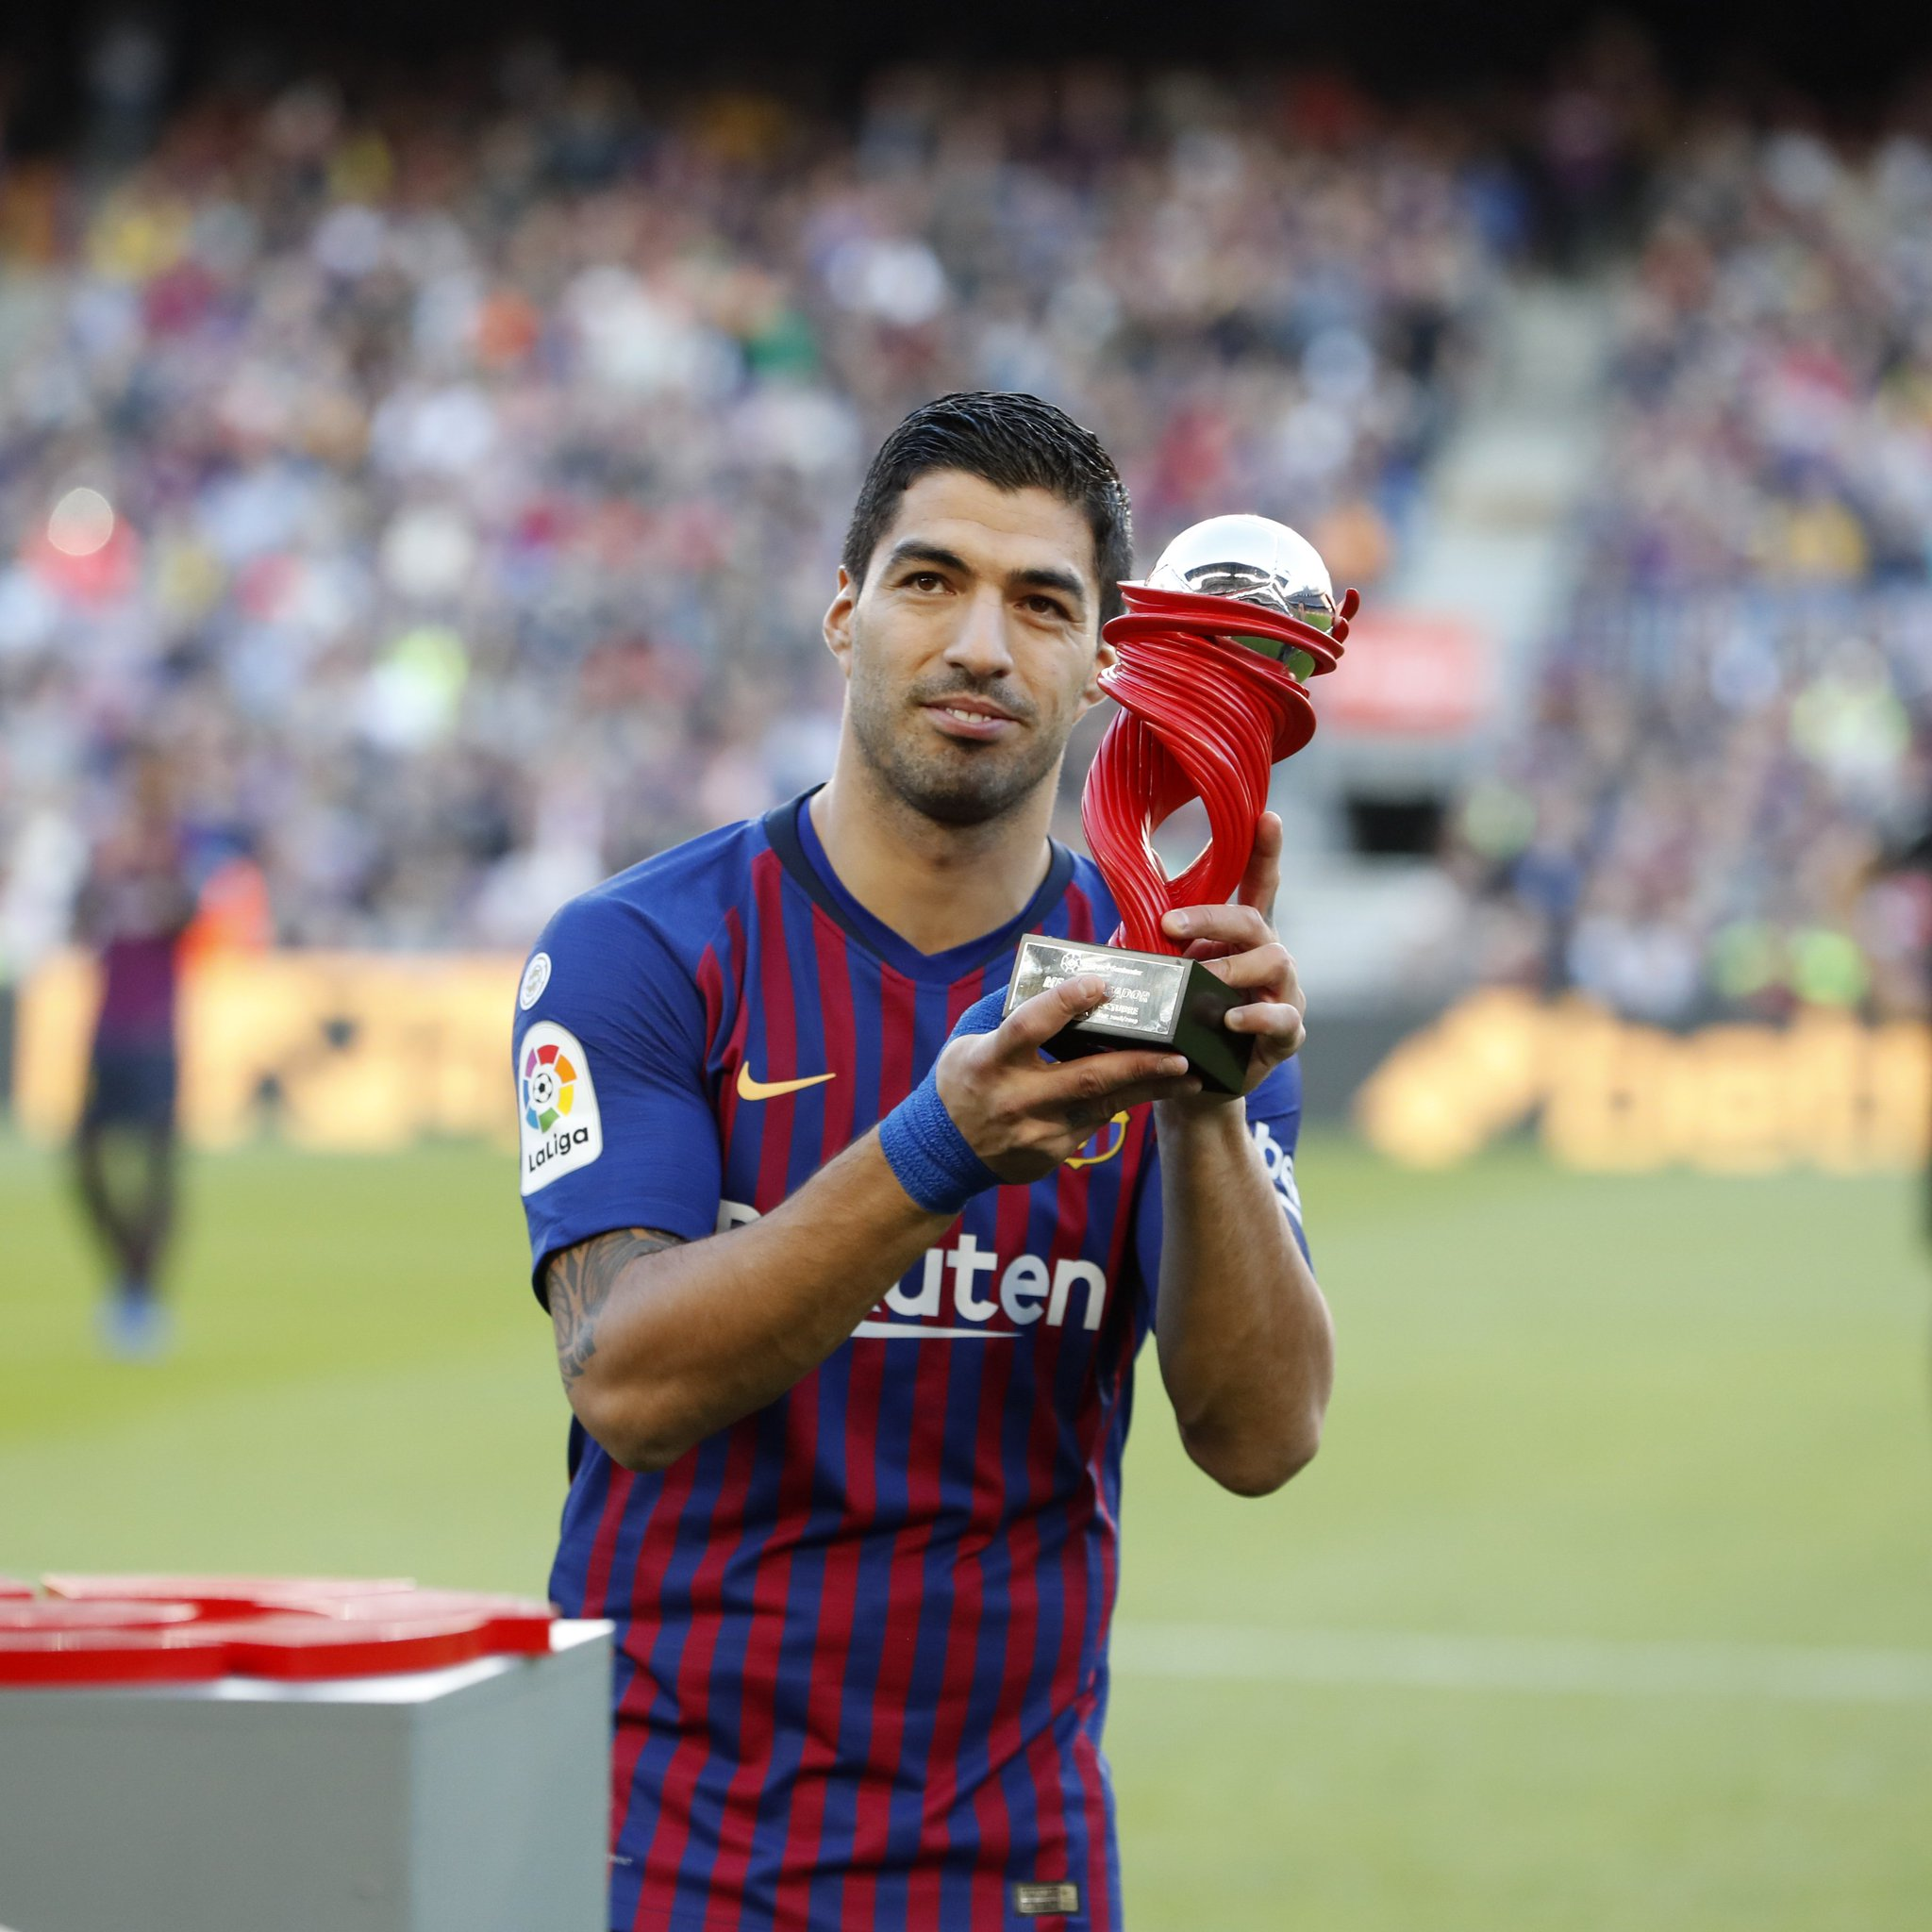 ⚽ @LuisSuarez9  �� Player of the month in @LaLiga - October https://t.co/d7GkRmtGly